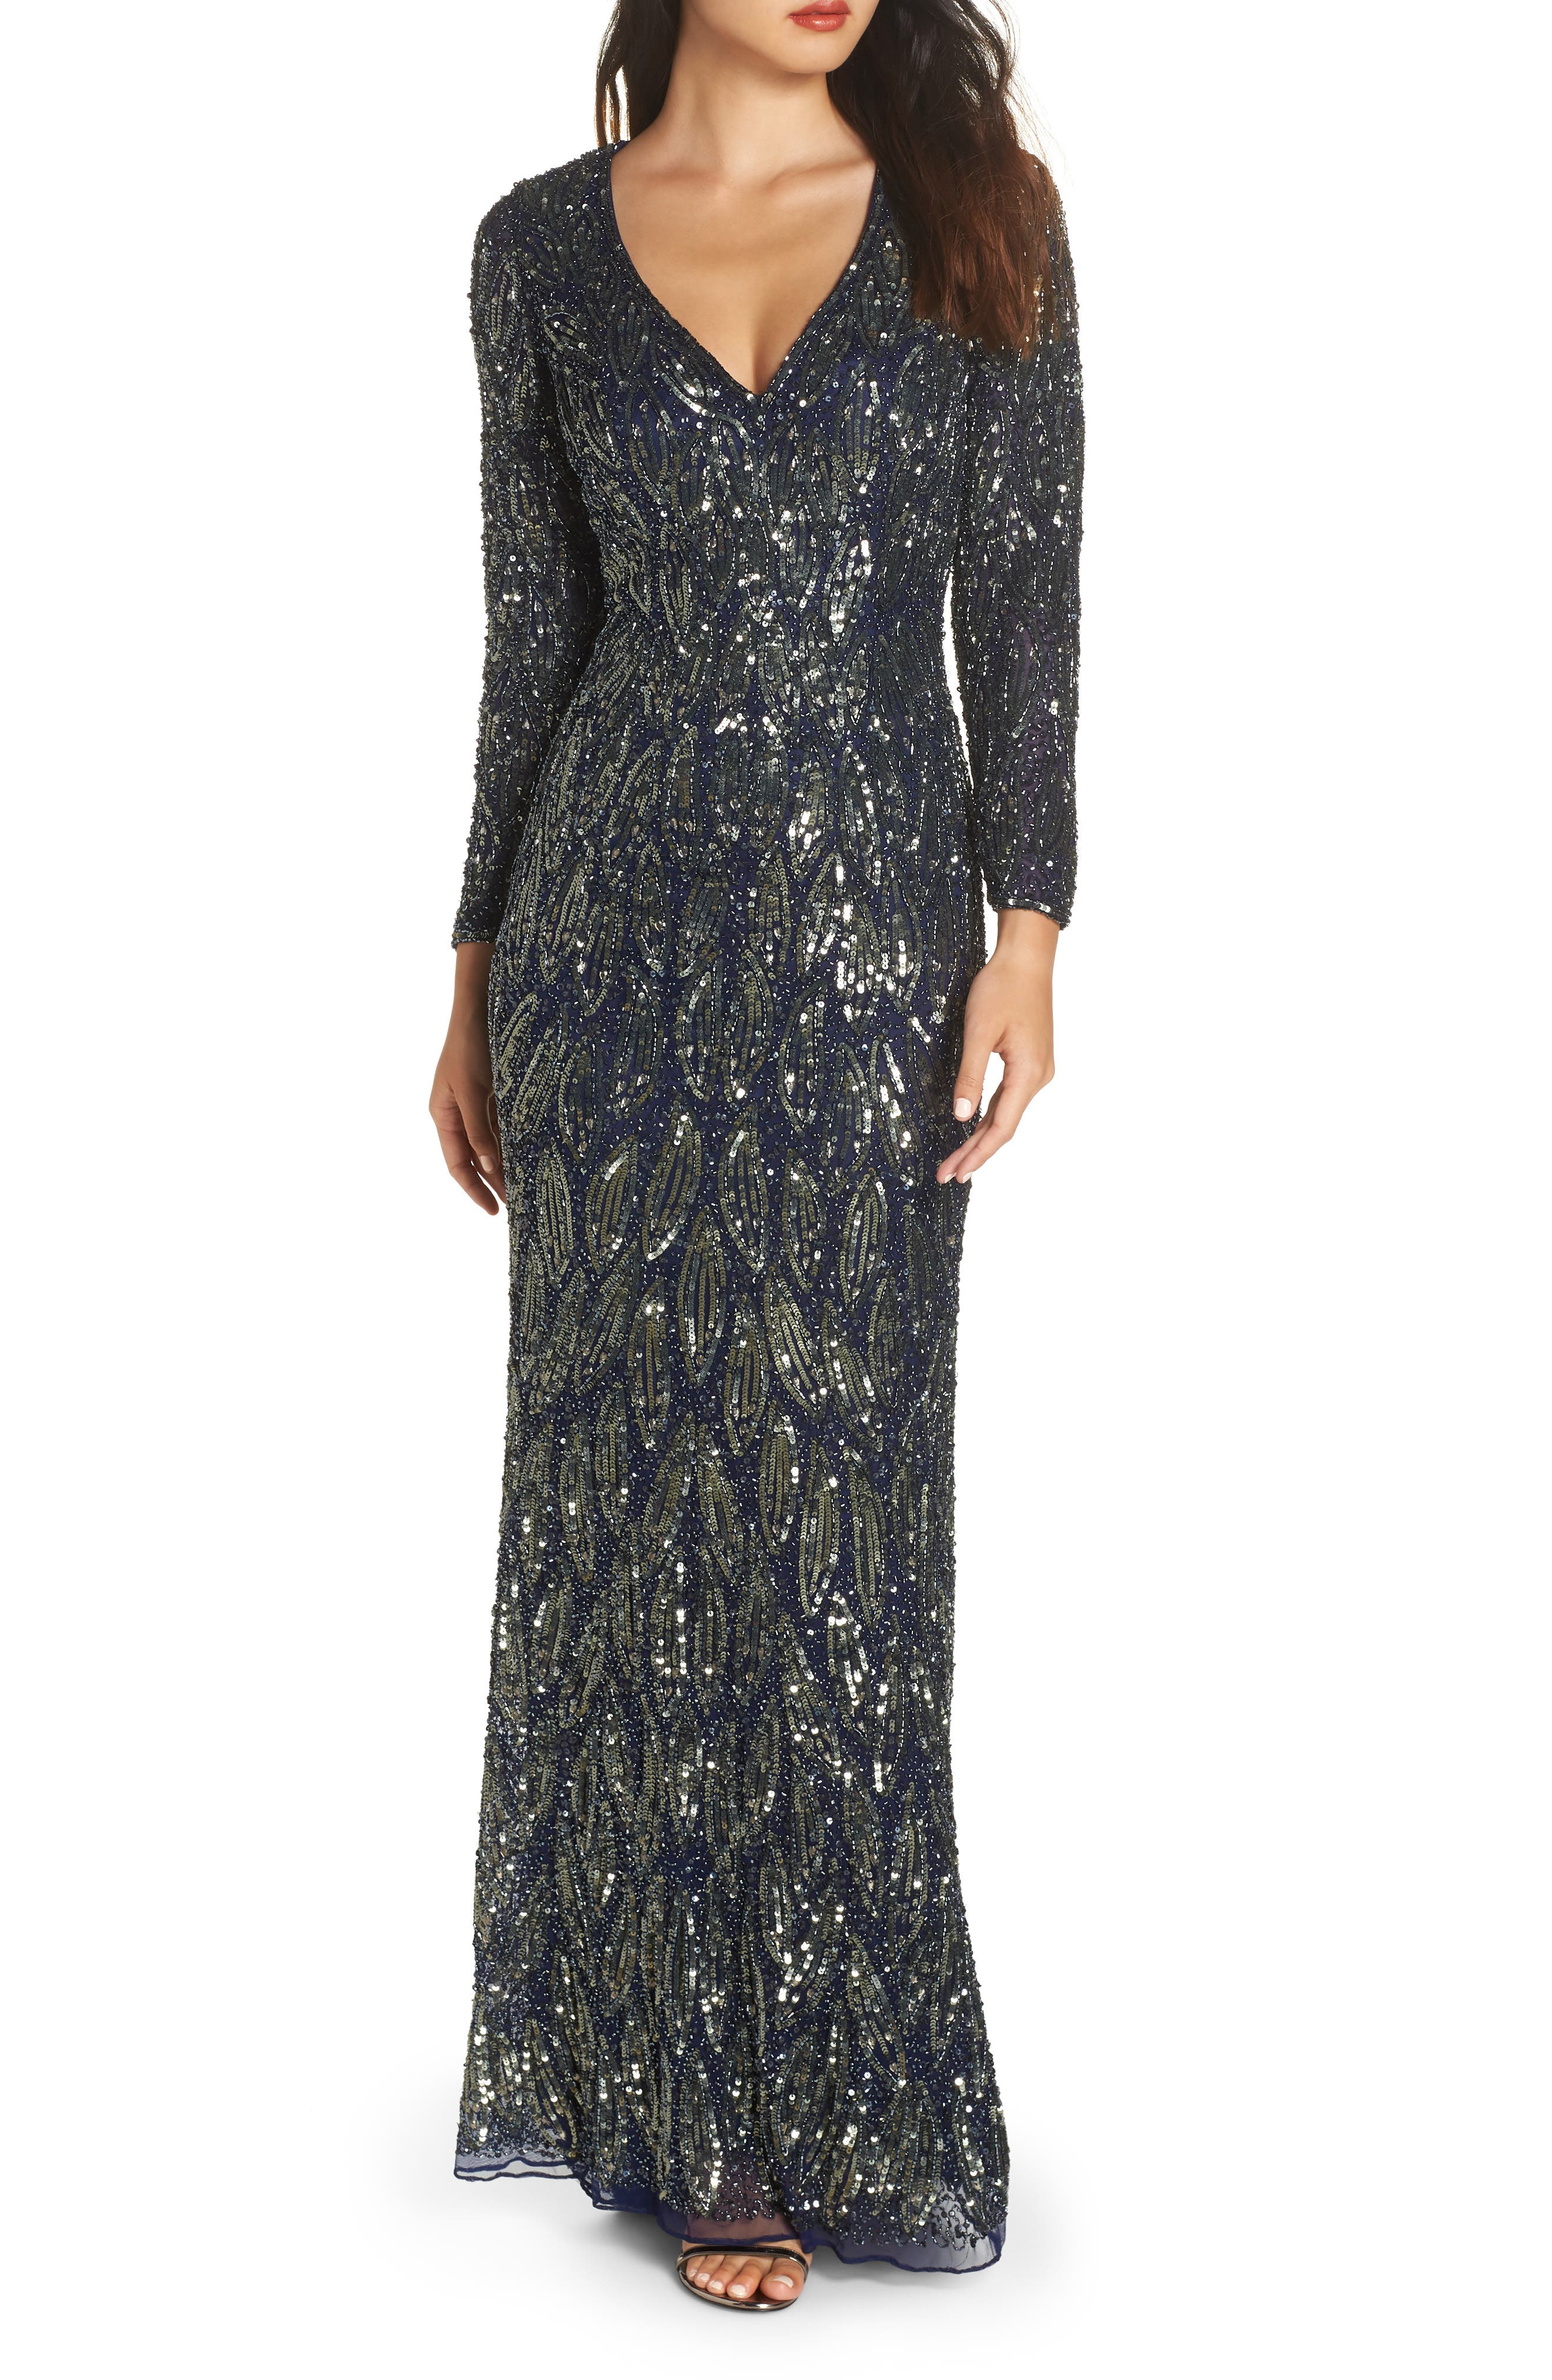 MAC DUGGAL, Beaded Long Sleeve Gown, Main thumbnail 1, color, MIDNIGHT